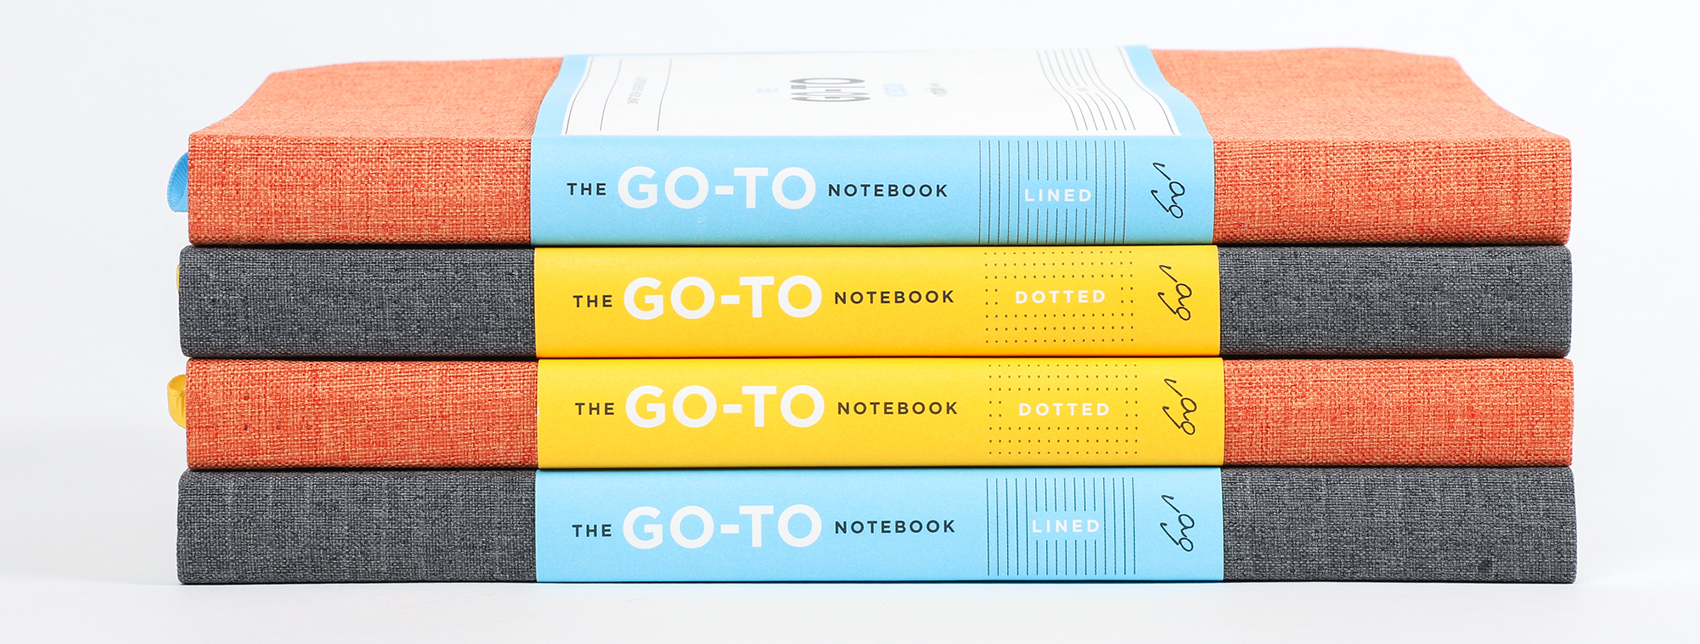 MOH_Blog_ChronicleBooks_GoToNotebook_10.png